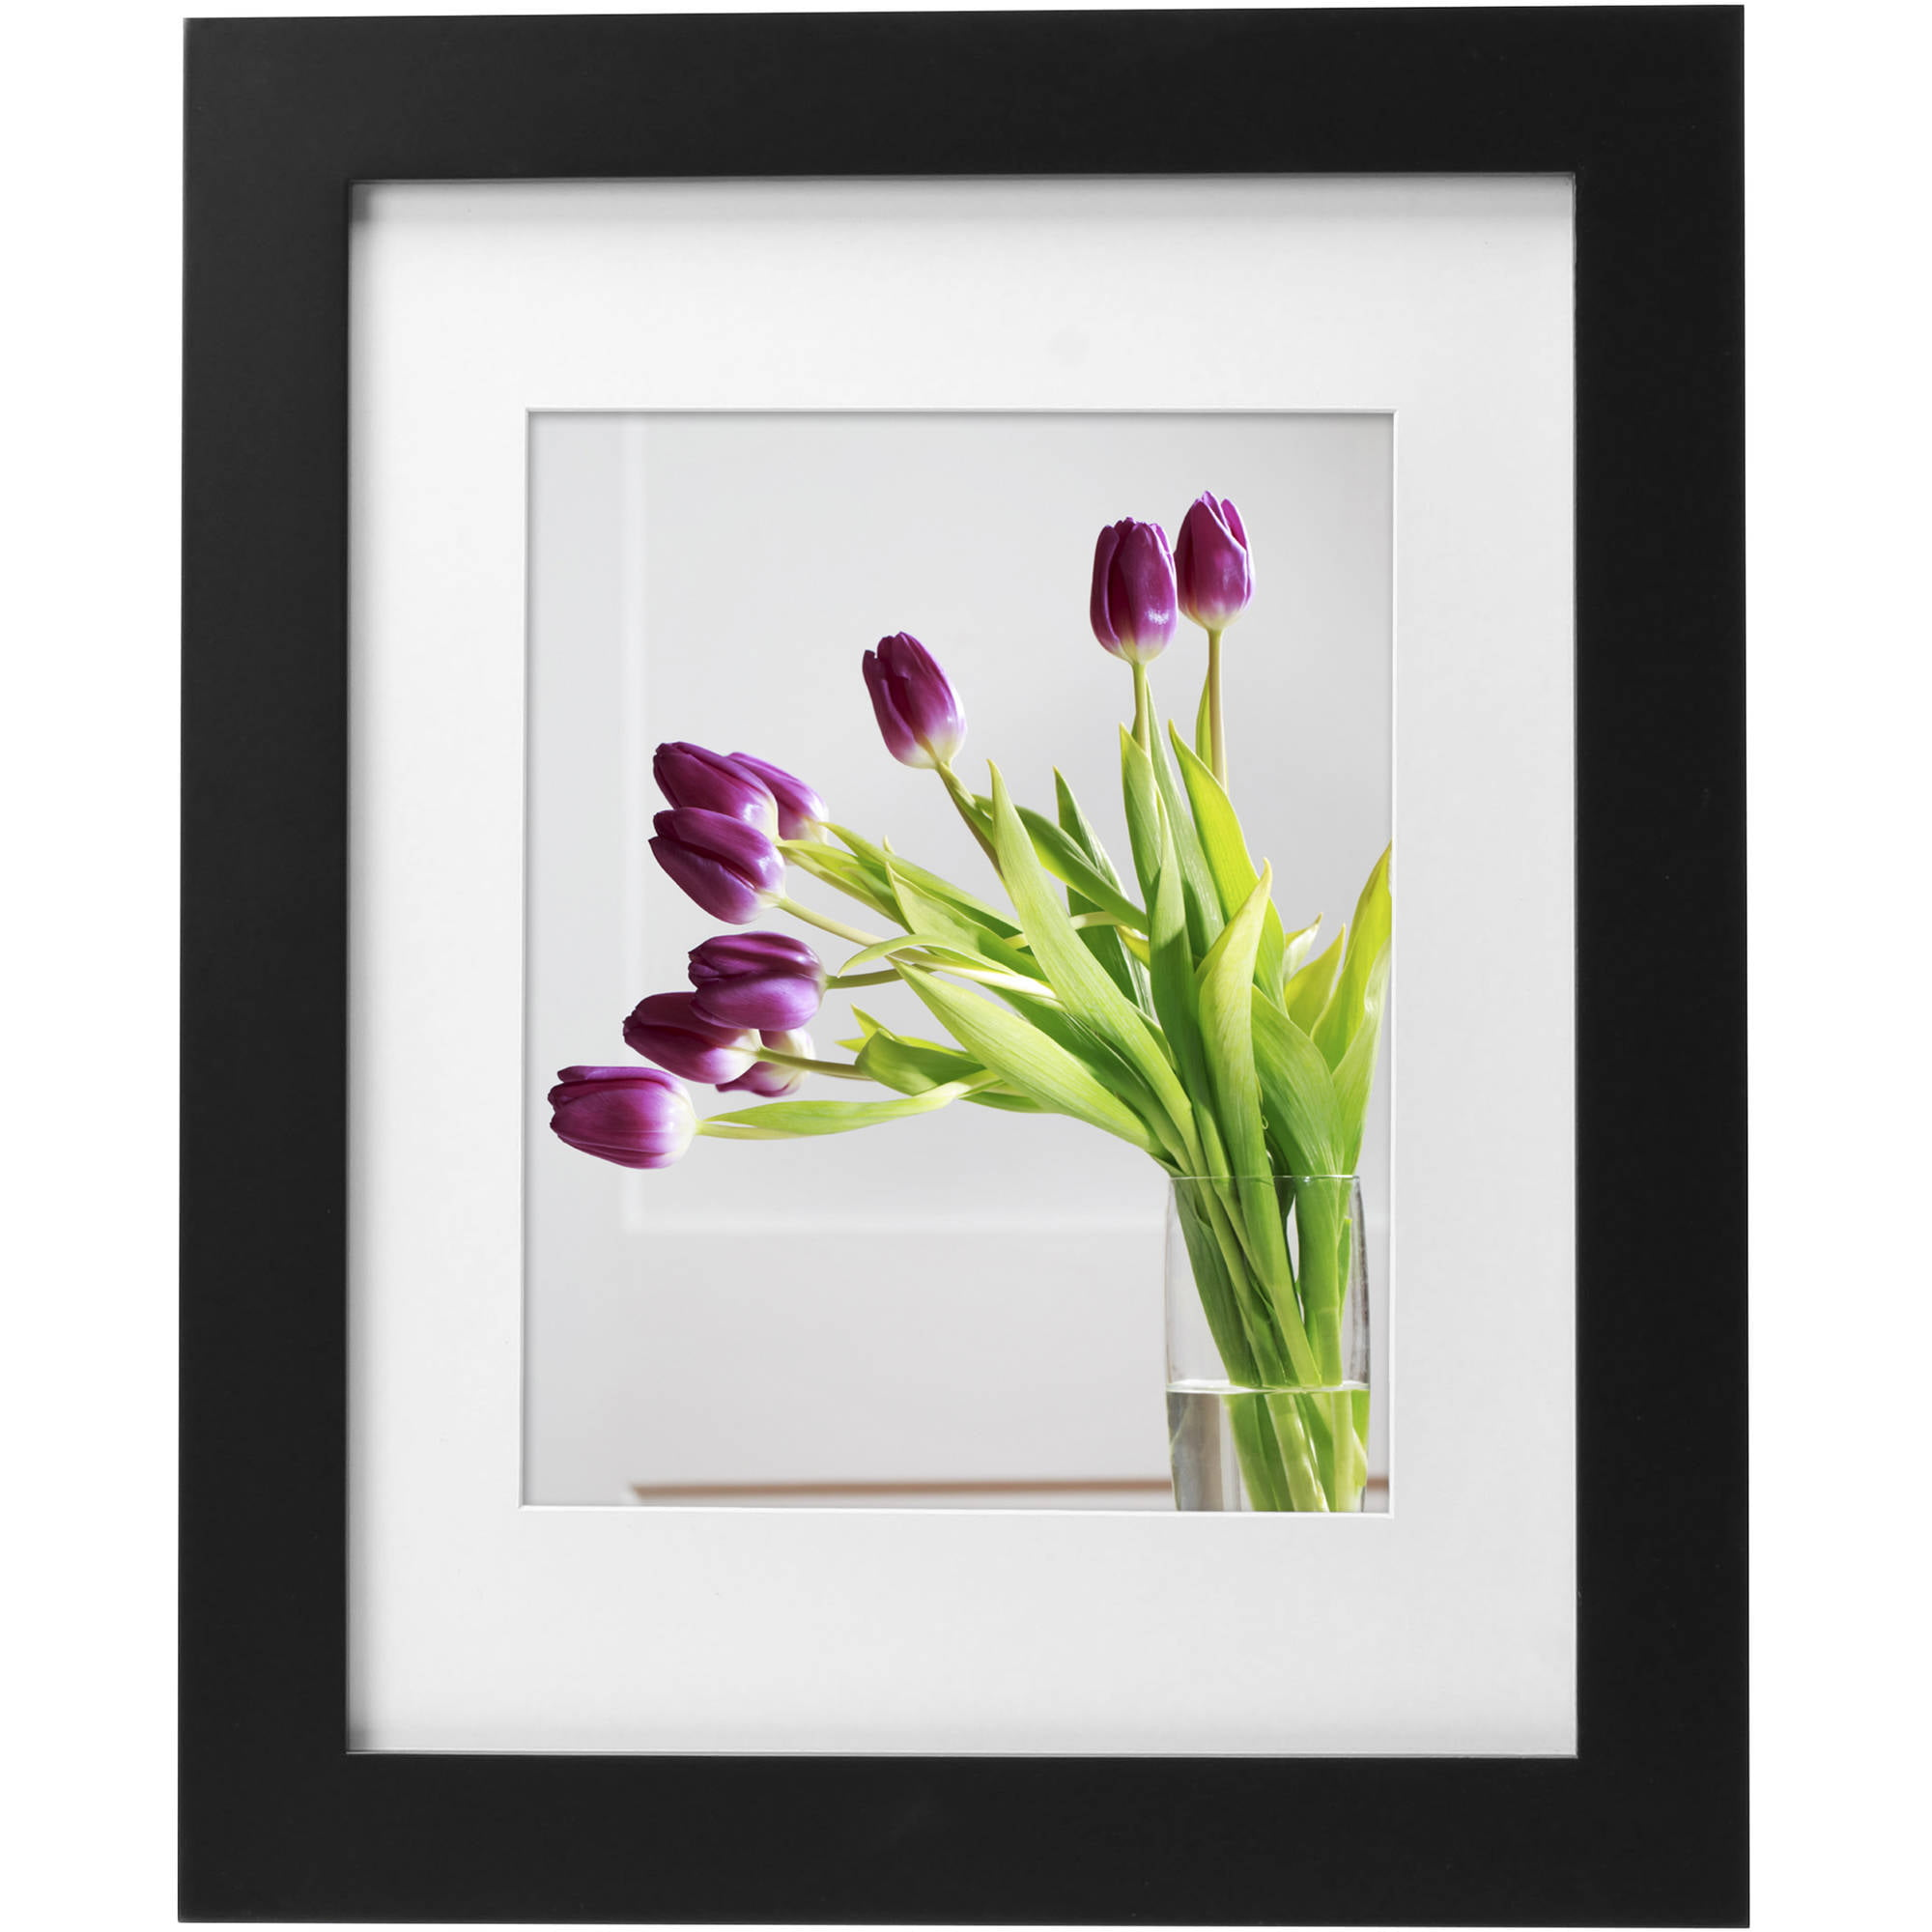 """Mainstays Museum 11"""" x 14"""" Matted to 8"""" x 10"""" Picture Frame, Black by Uniek"""